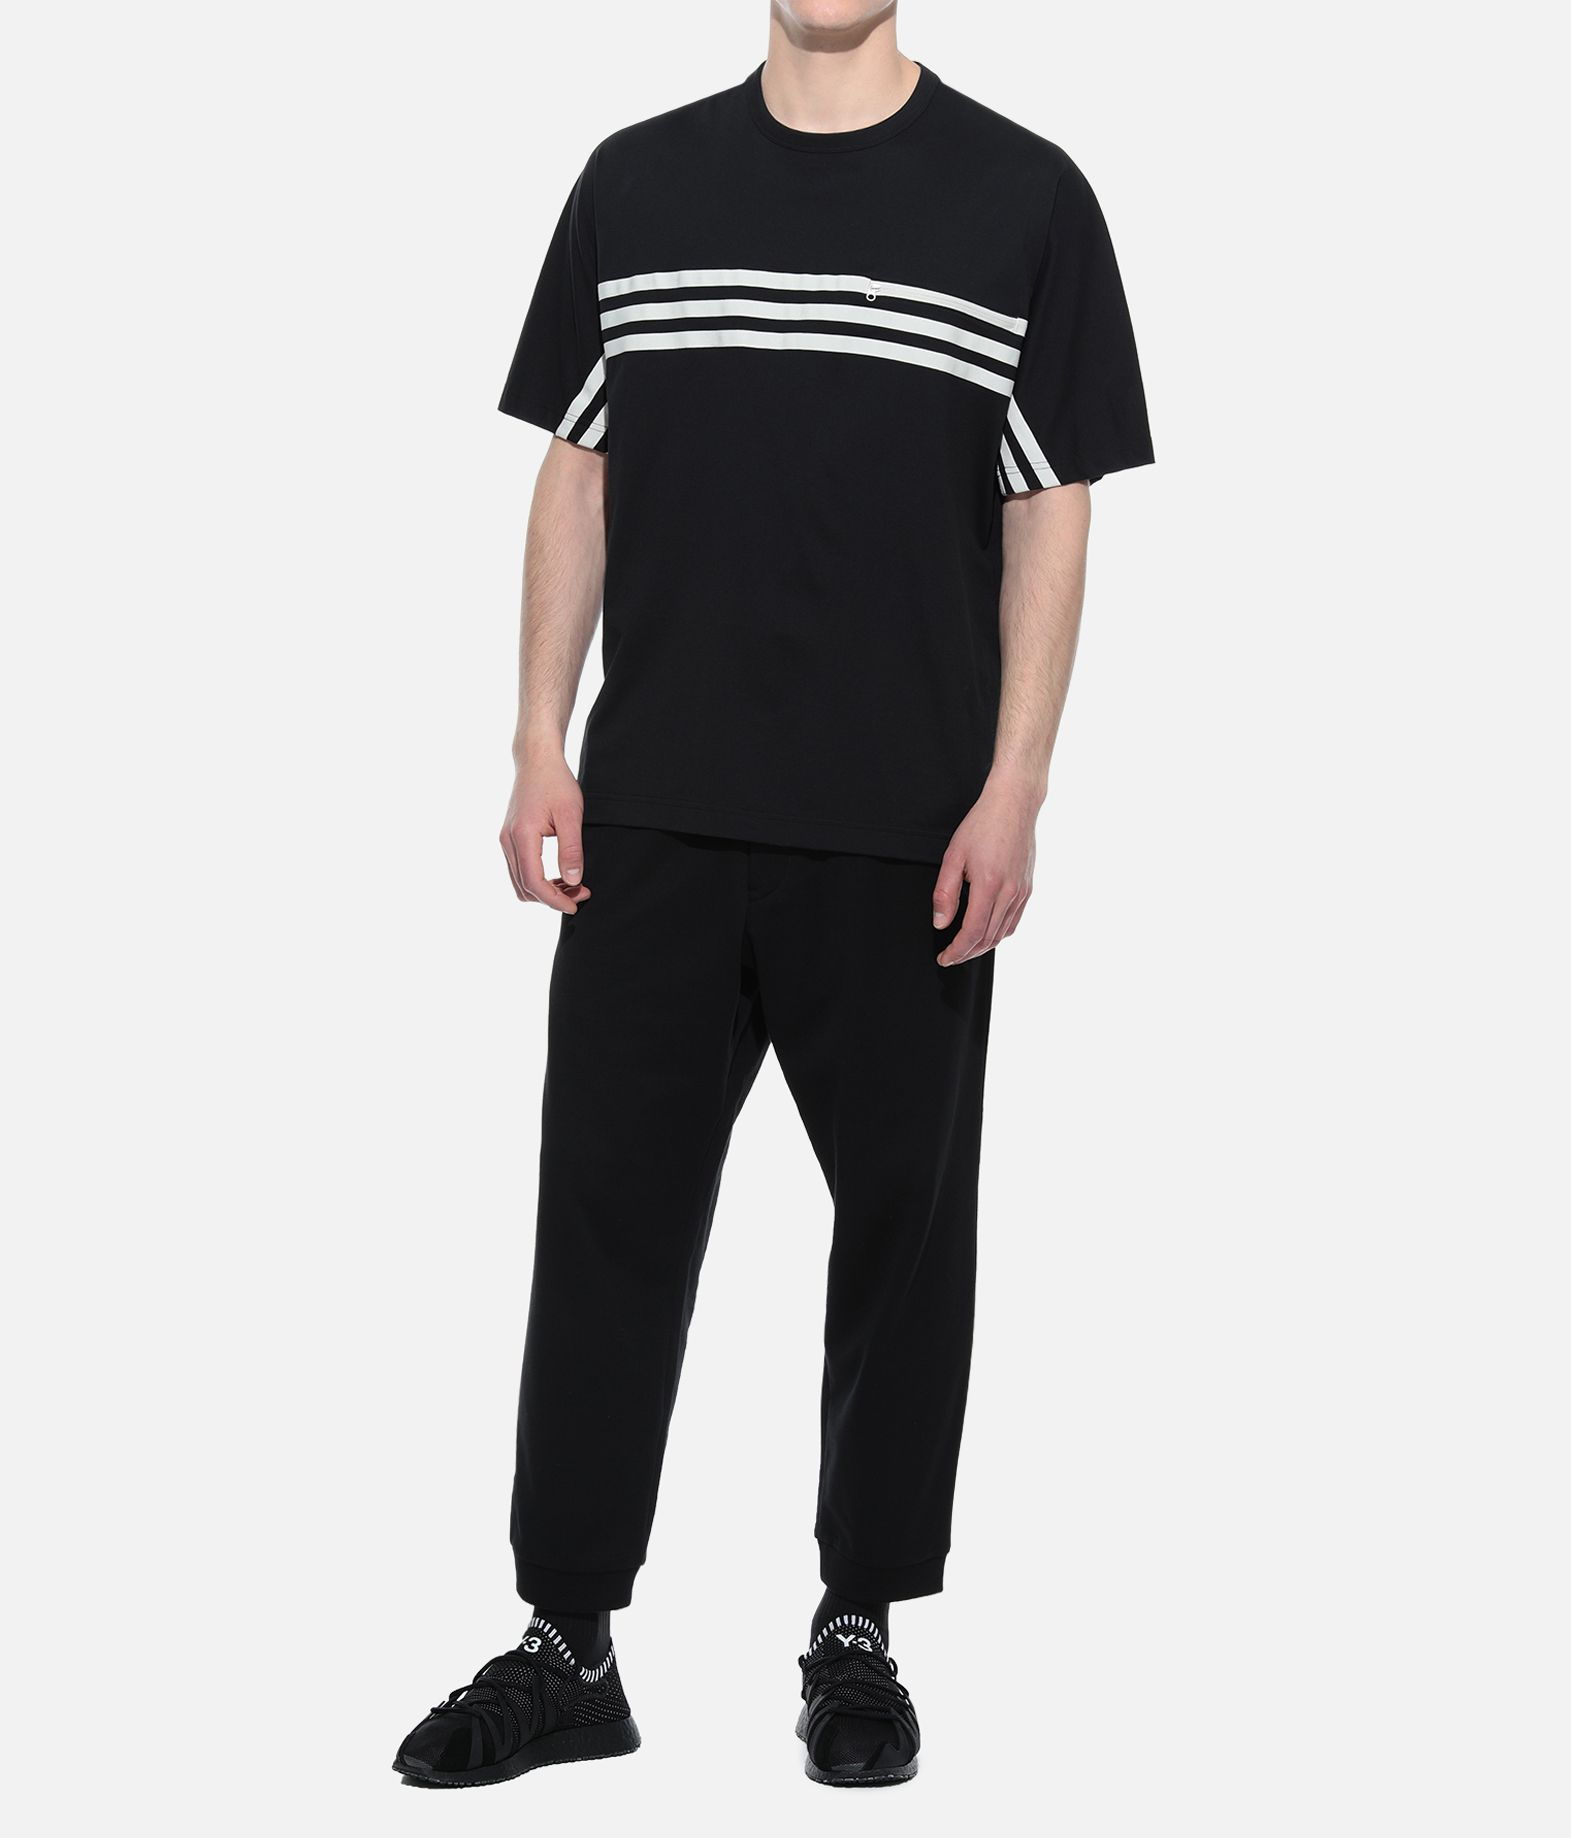 Y-3 Y-3 3-Stripes Packable Tee Short sleeve t-shirt Man a